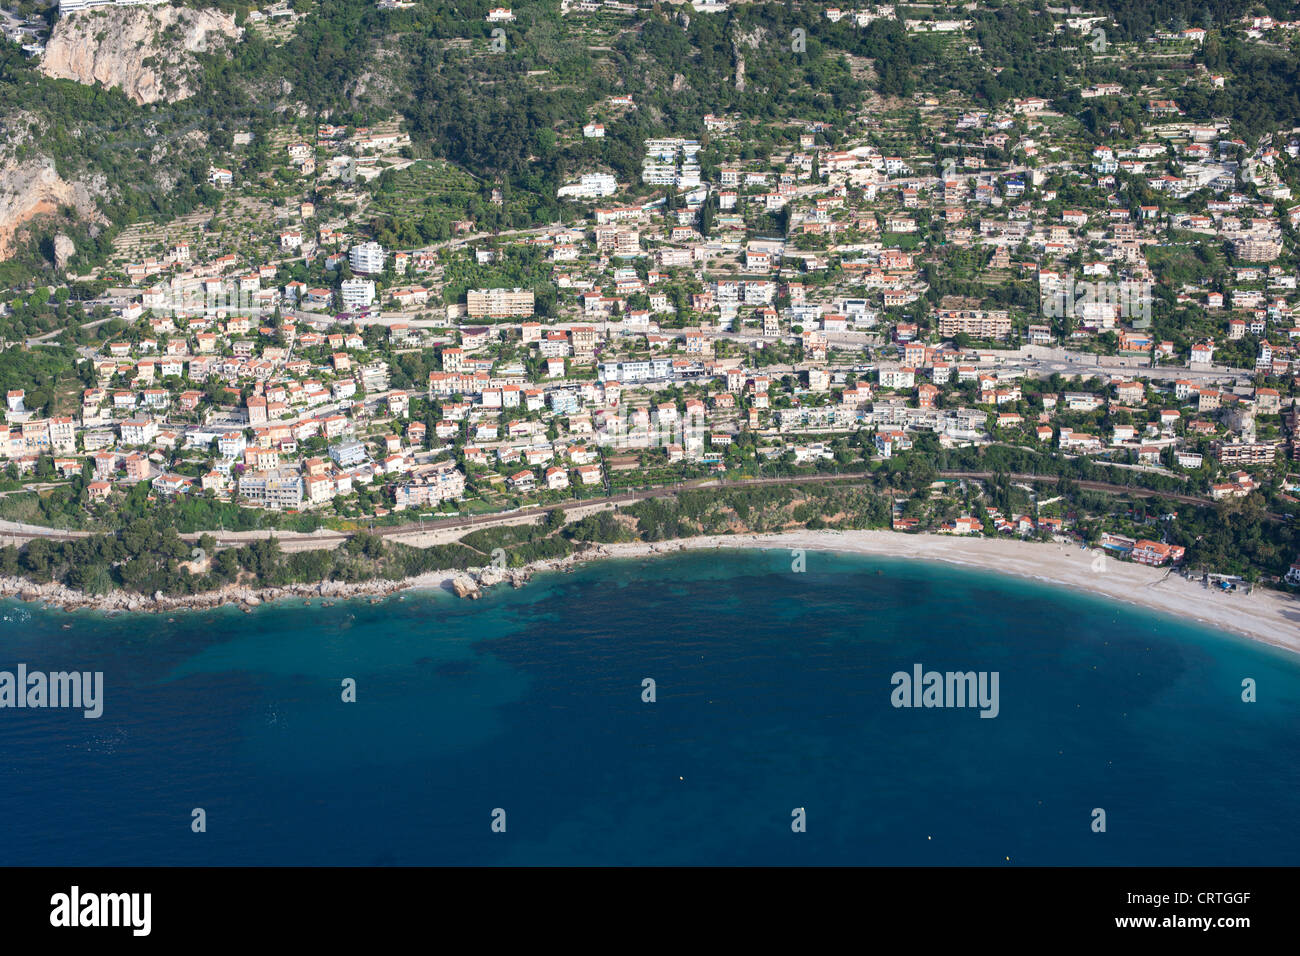 ROQUEBRUNE-CAP-MARTIN (aerial view). Seaside resort on the French Riviera, France. - Stock Image